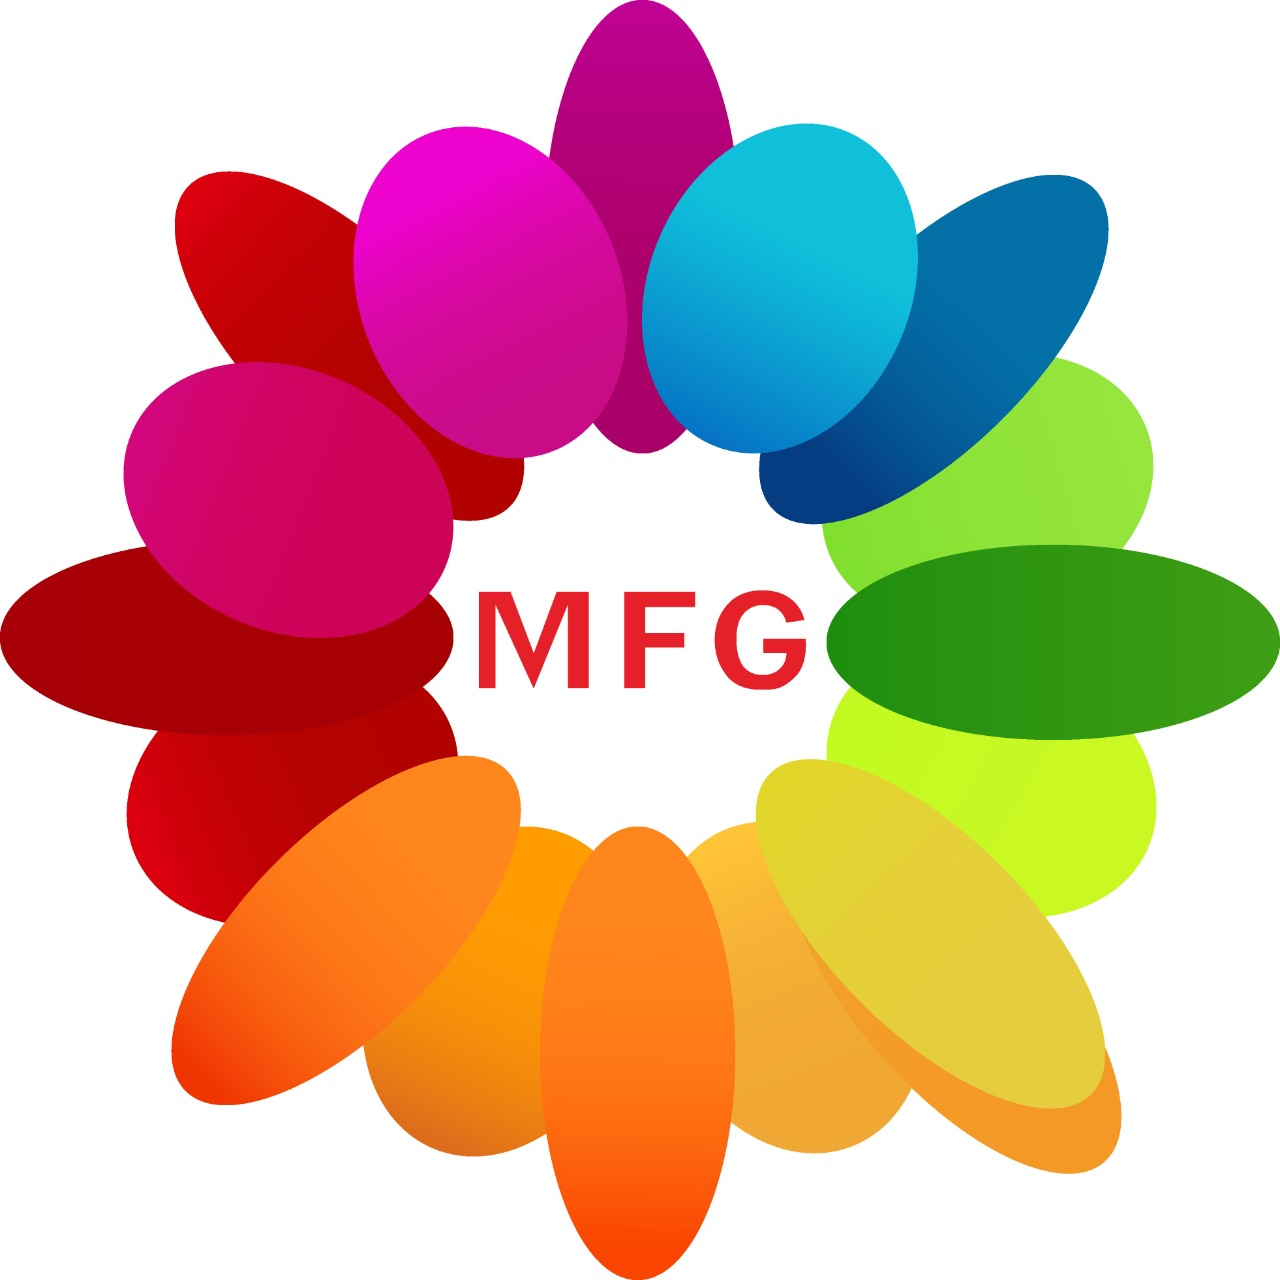 Bunch of 10 red roses with 3 dairy milk silk cadburys